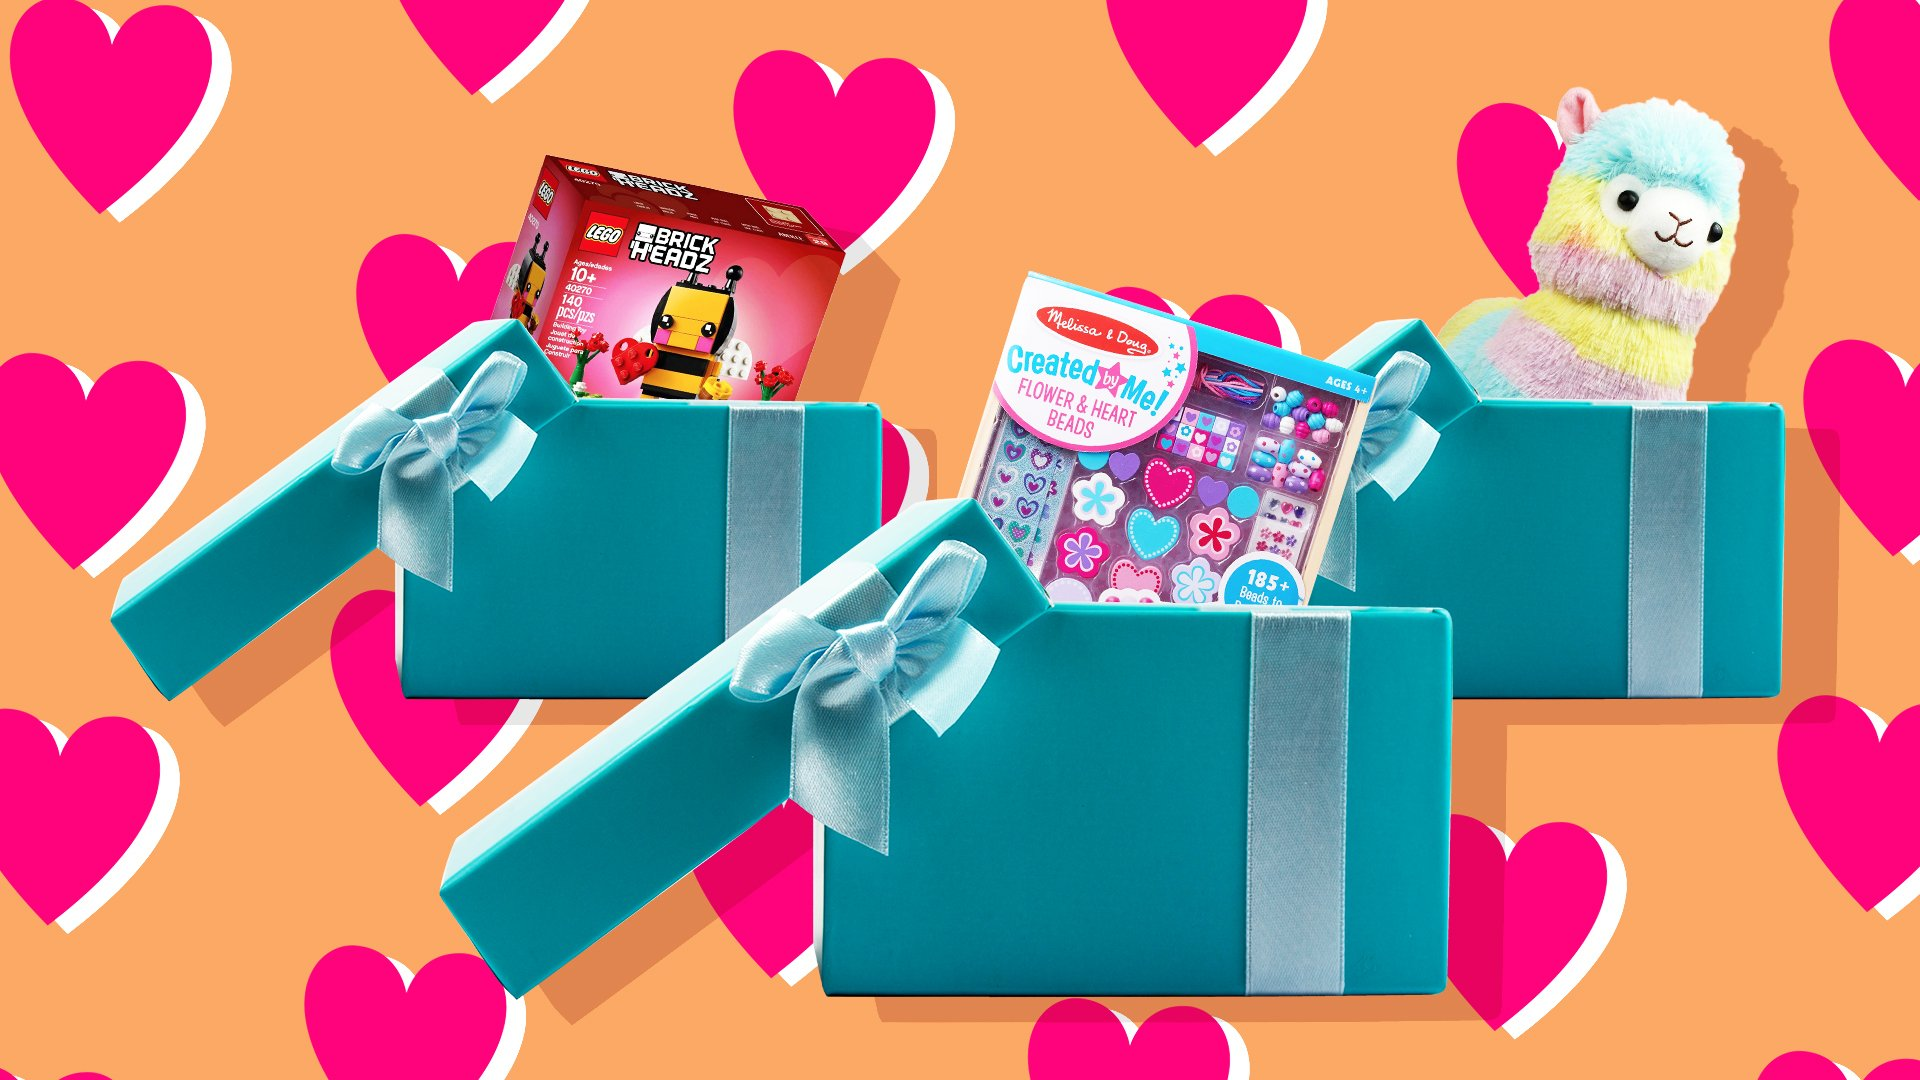 $20 Kids Valentine's Day Gifts That Only Look Pricey